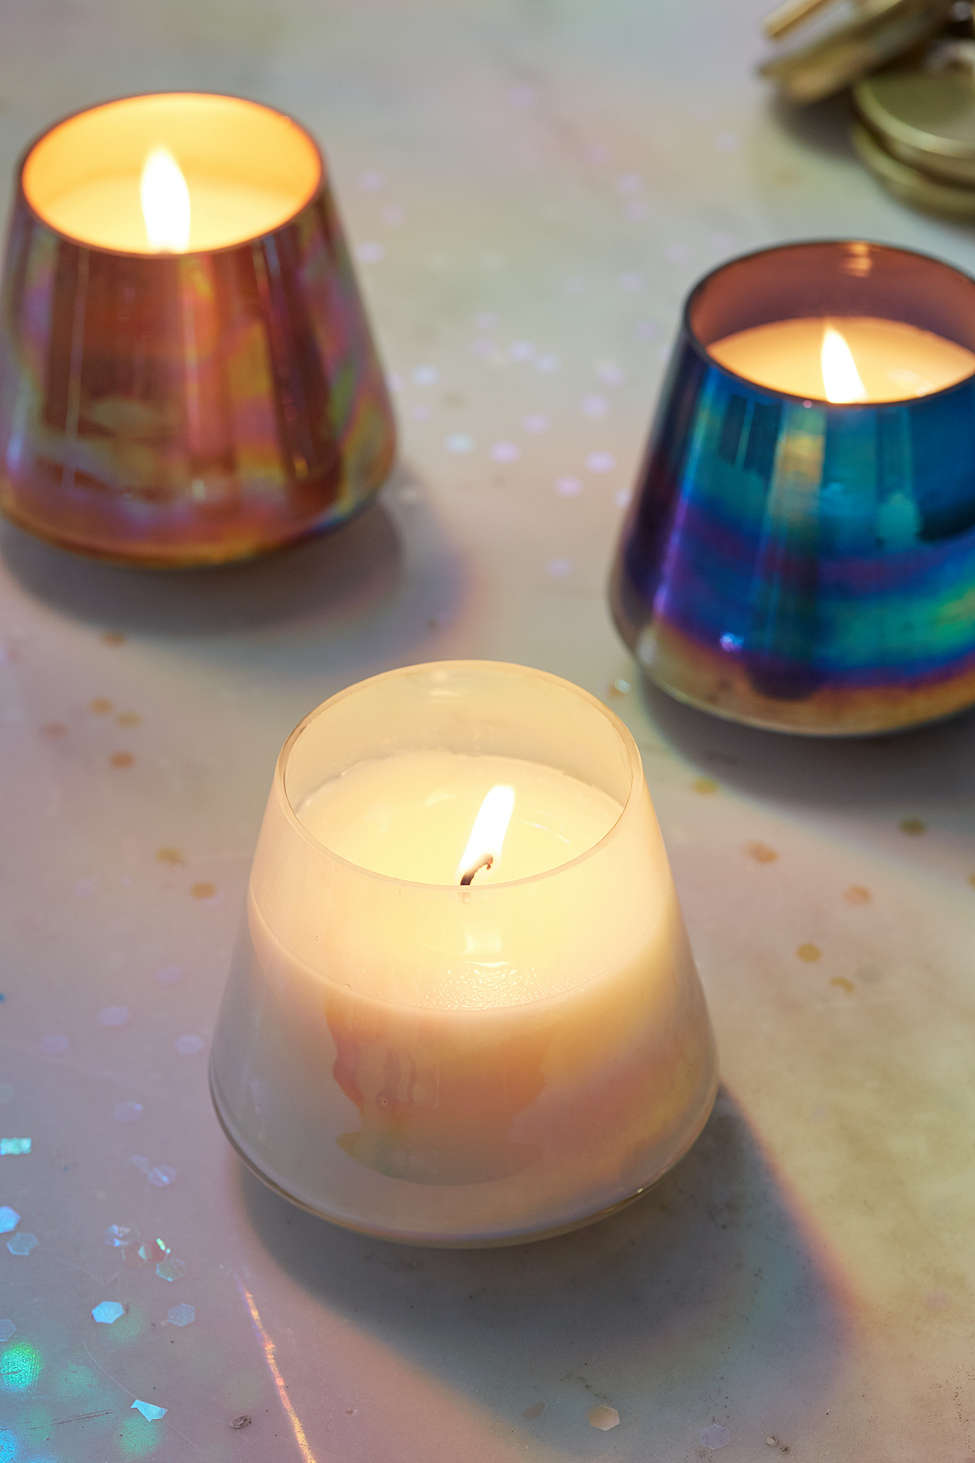 A Warm Glow Candles Containers And Cozy Accessories